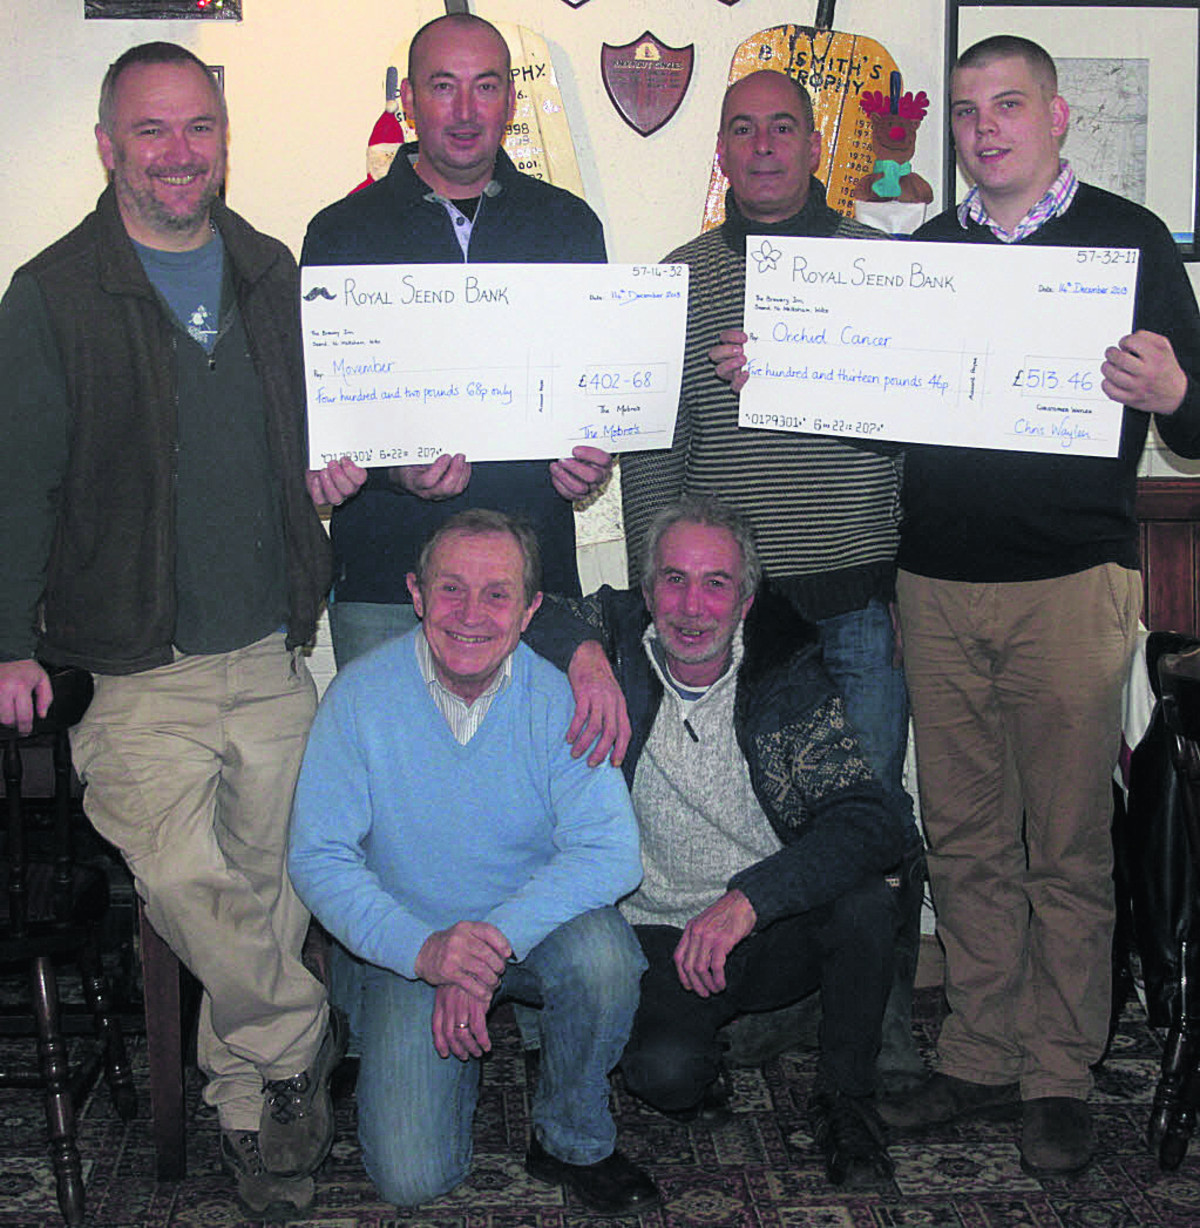 Fundraisers Mick Grist, Paul Shellard, Raf Mattar and Chris Waylen, front, Norman Fry, landlord of the Brewery Inn, and Steven Foskett raised £916 for male cancer charities